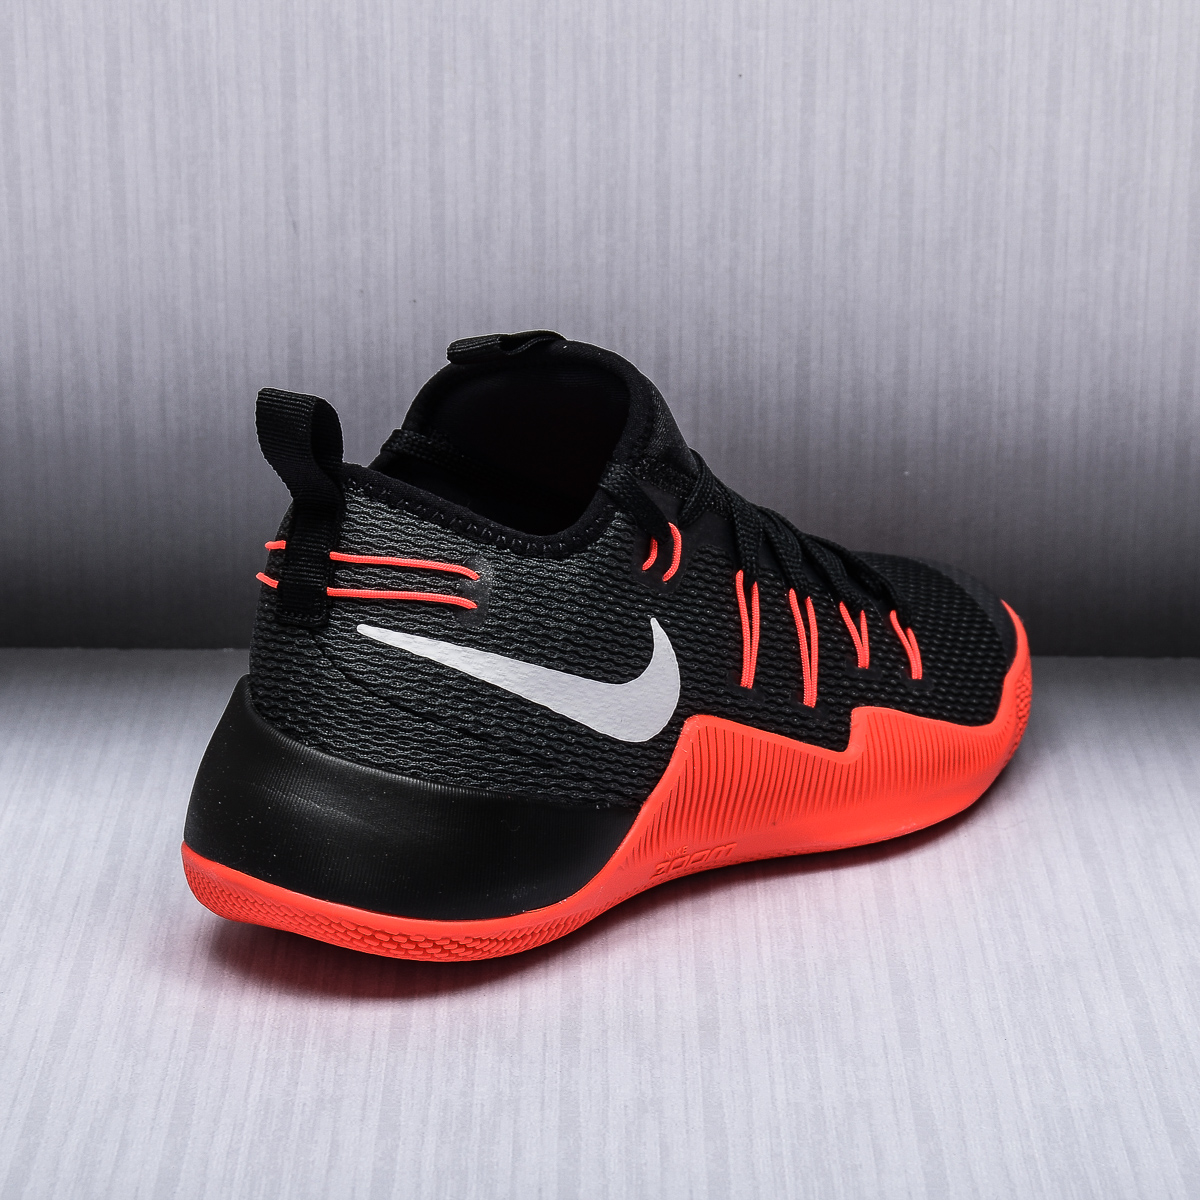 5ebe9decfbc6 Nike Hypershift 2017 Black extreme-hosting.co.uk